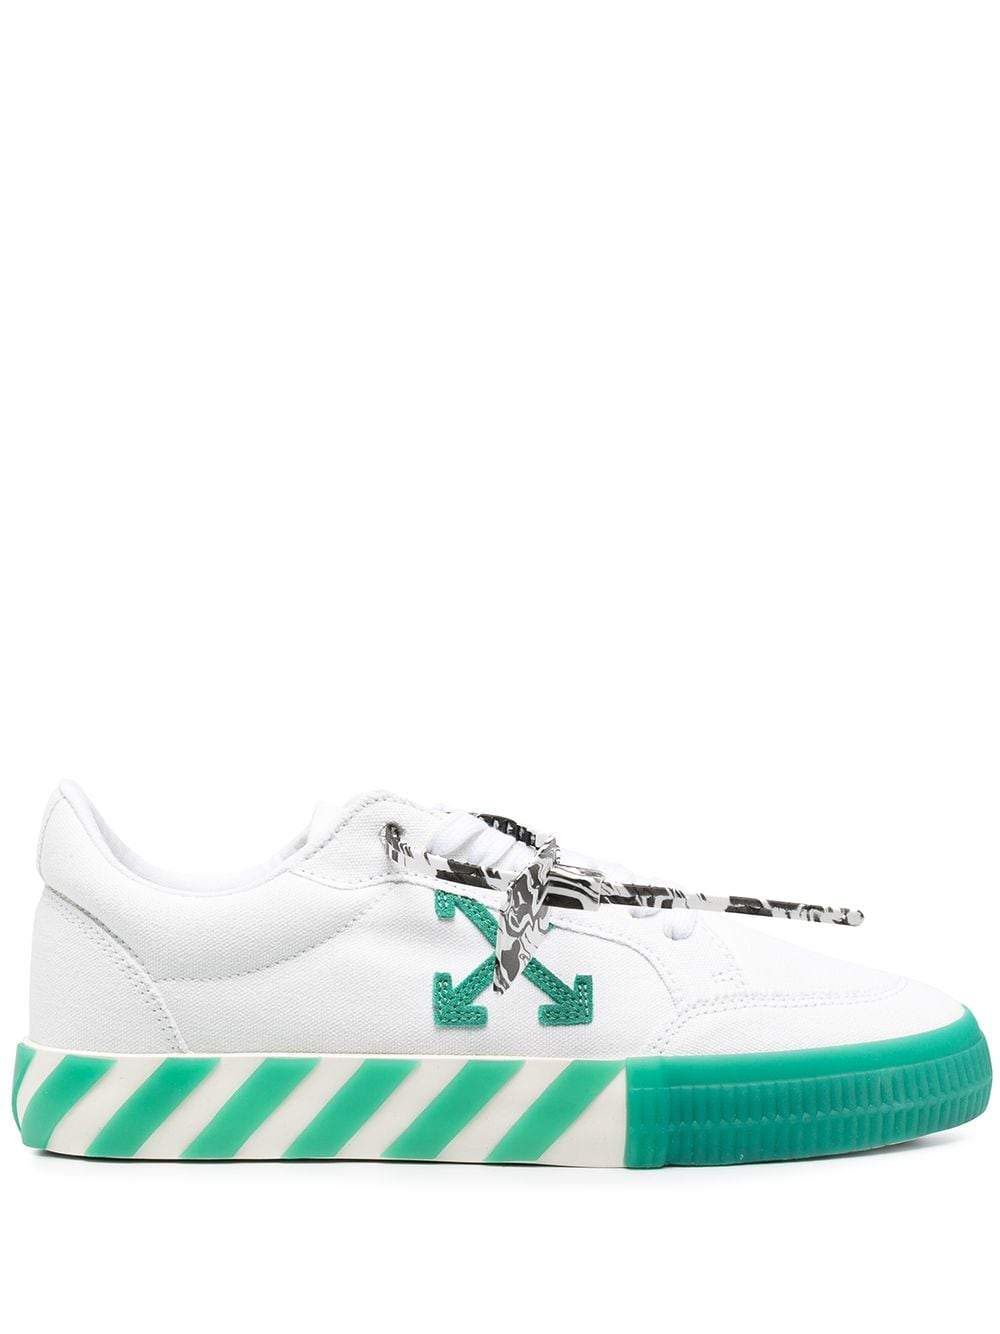 OFF-WHITE Low Vulcanized Canvas Sneakers White/Green